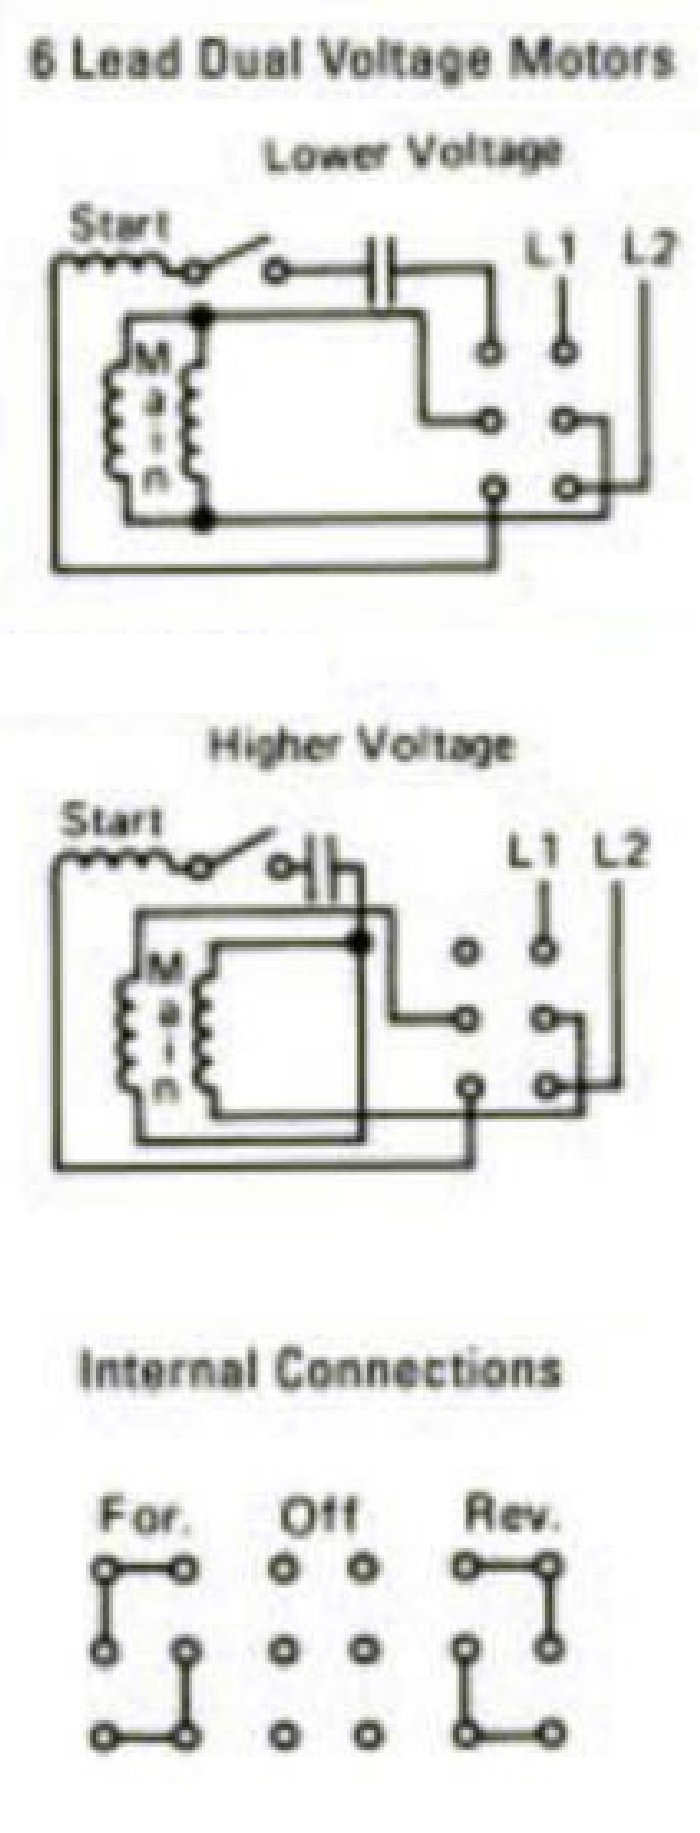 6 lead drum sw wiring bremas switch wiring diagram how to wire a boat lift switch to a  at eliteediting.co